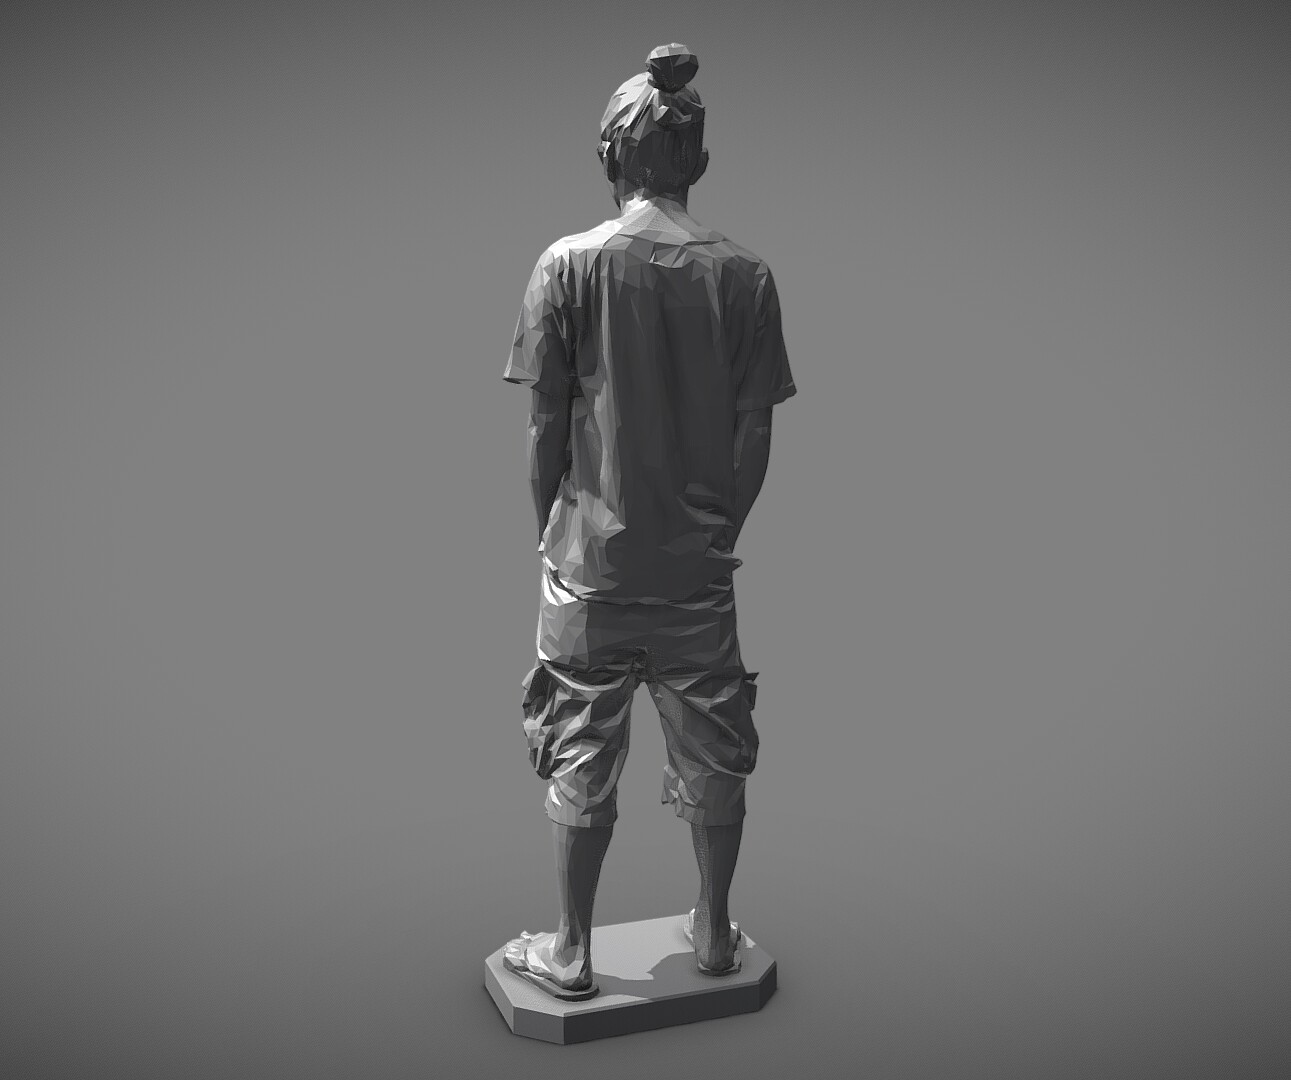 Michael wu mw 3d printing test low downlox free 3d model by mwopus mwopus sketchfab20190320 007951